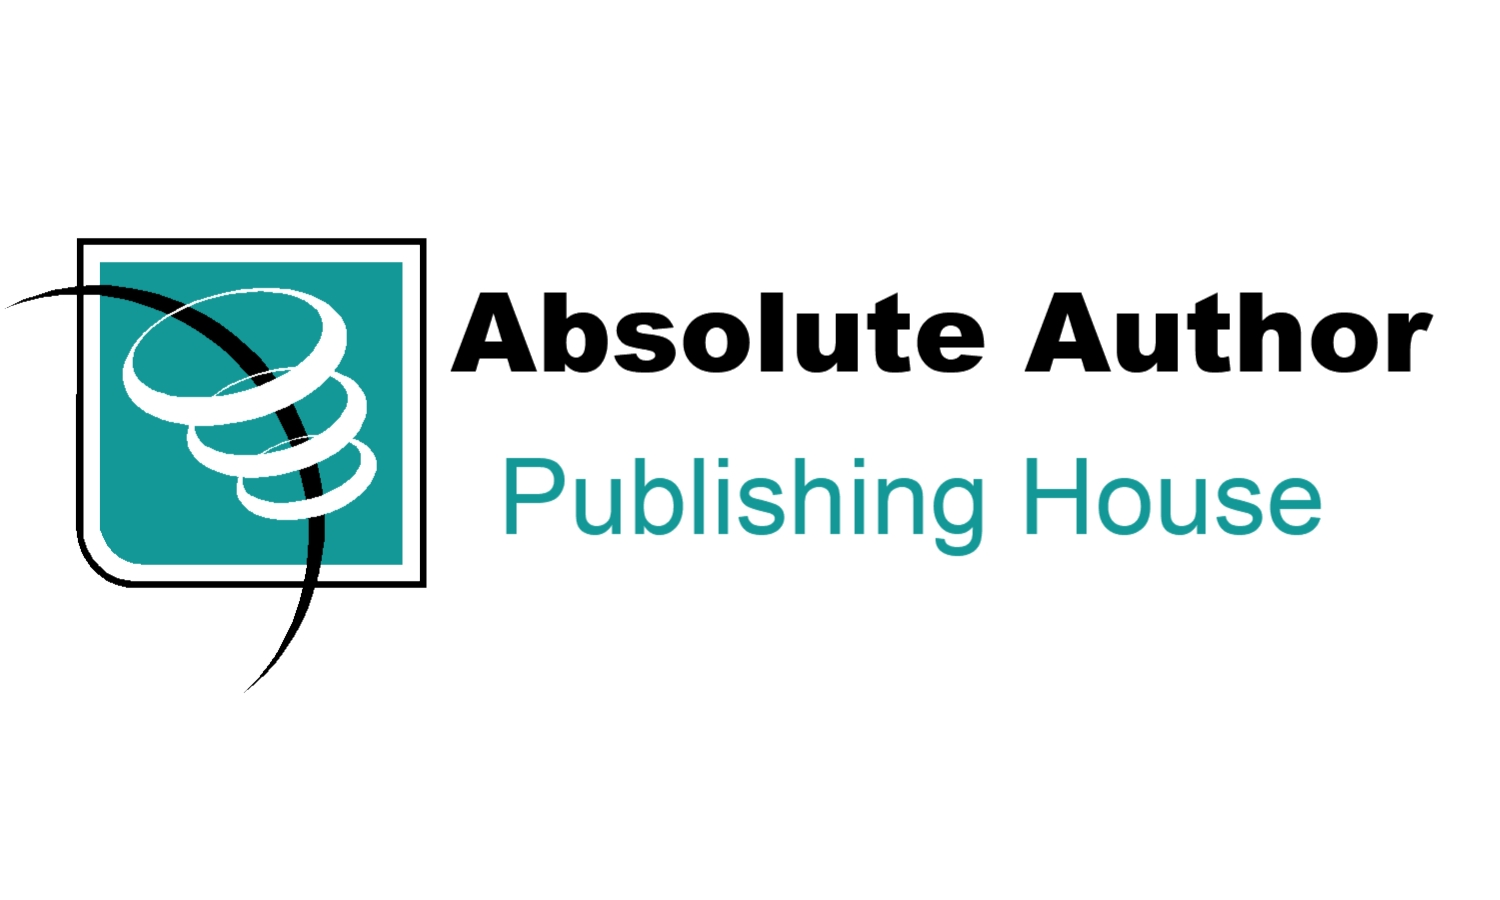 Absolute Author Publishing House